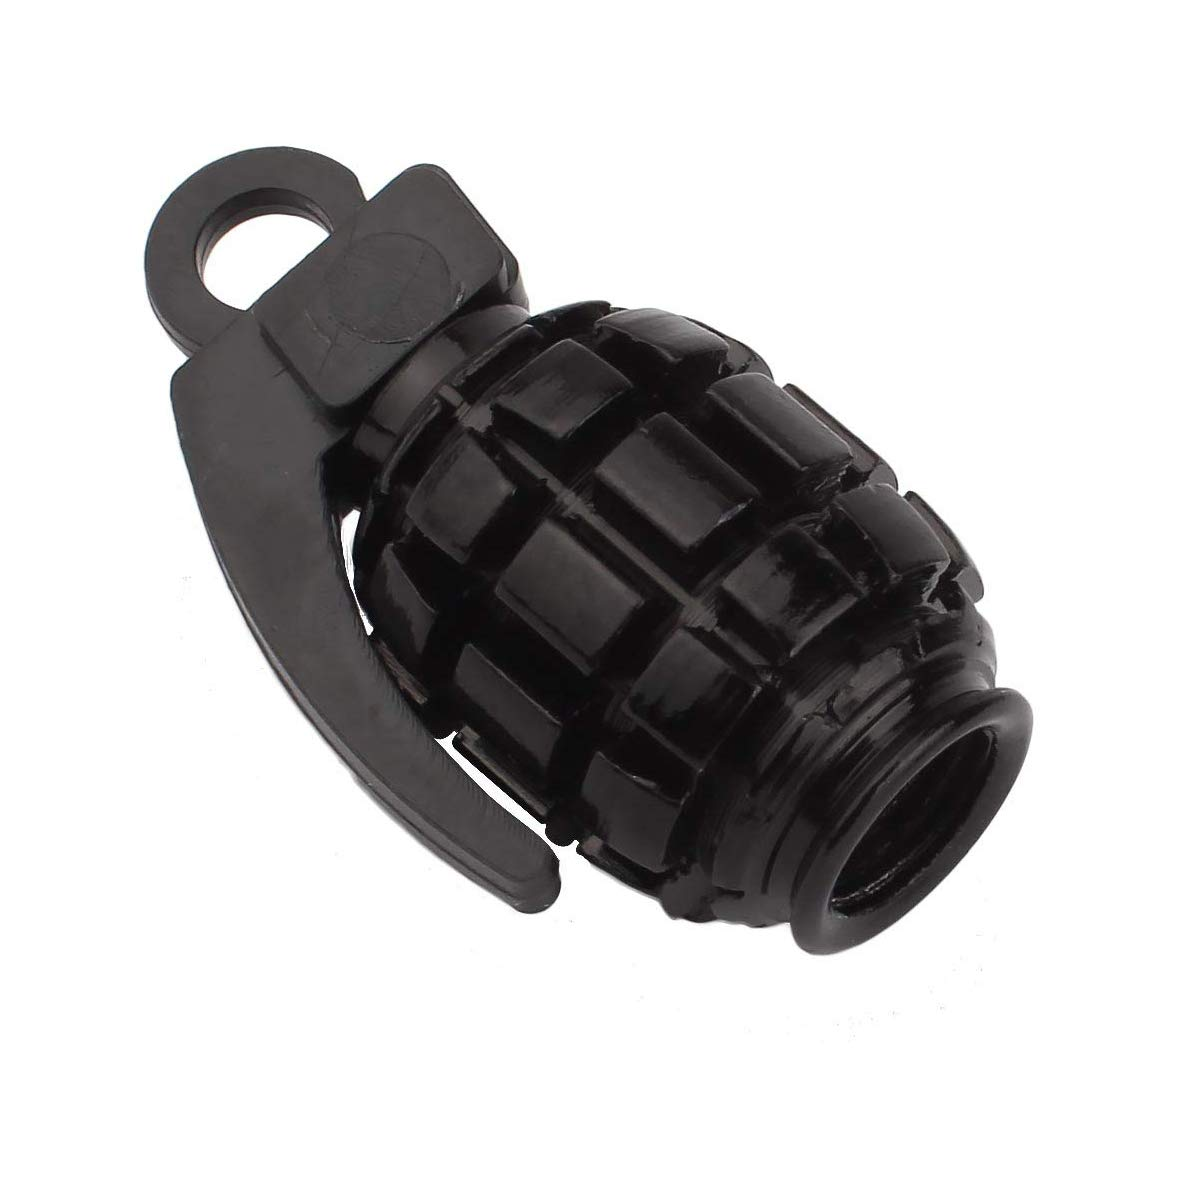 BOROLA Car Tire Valve Stem Caps With Grenade Style Black, Pack of 5